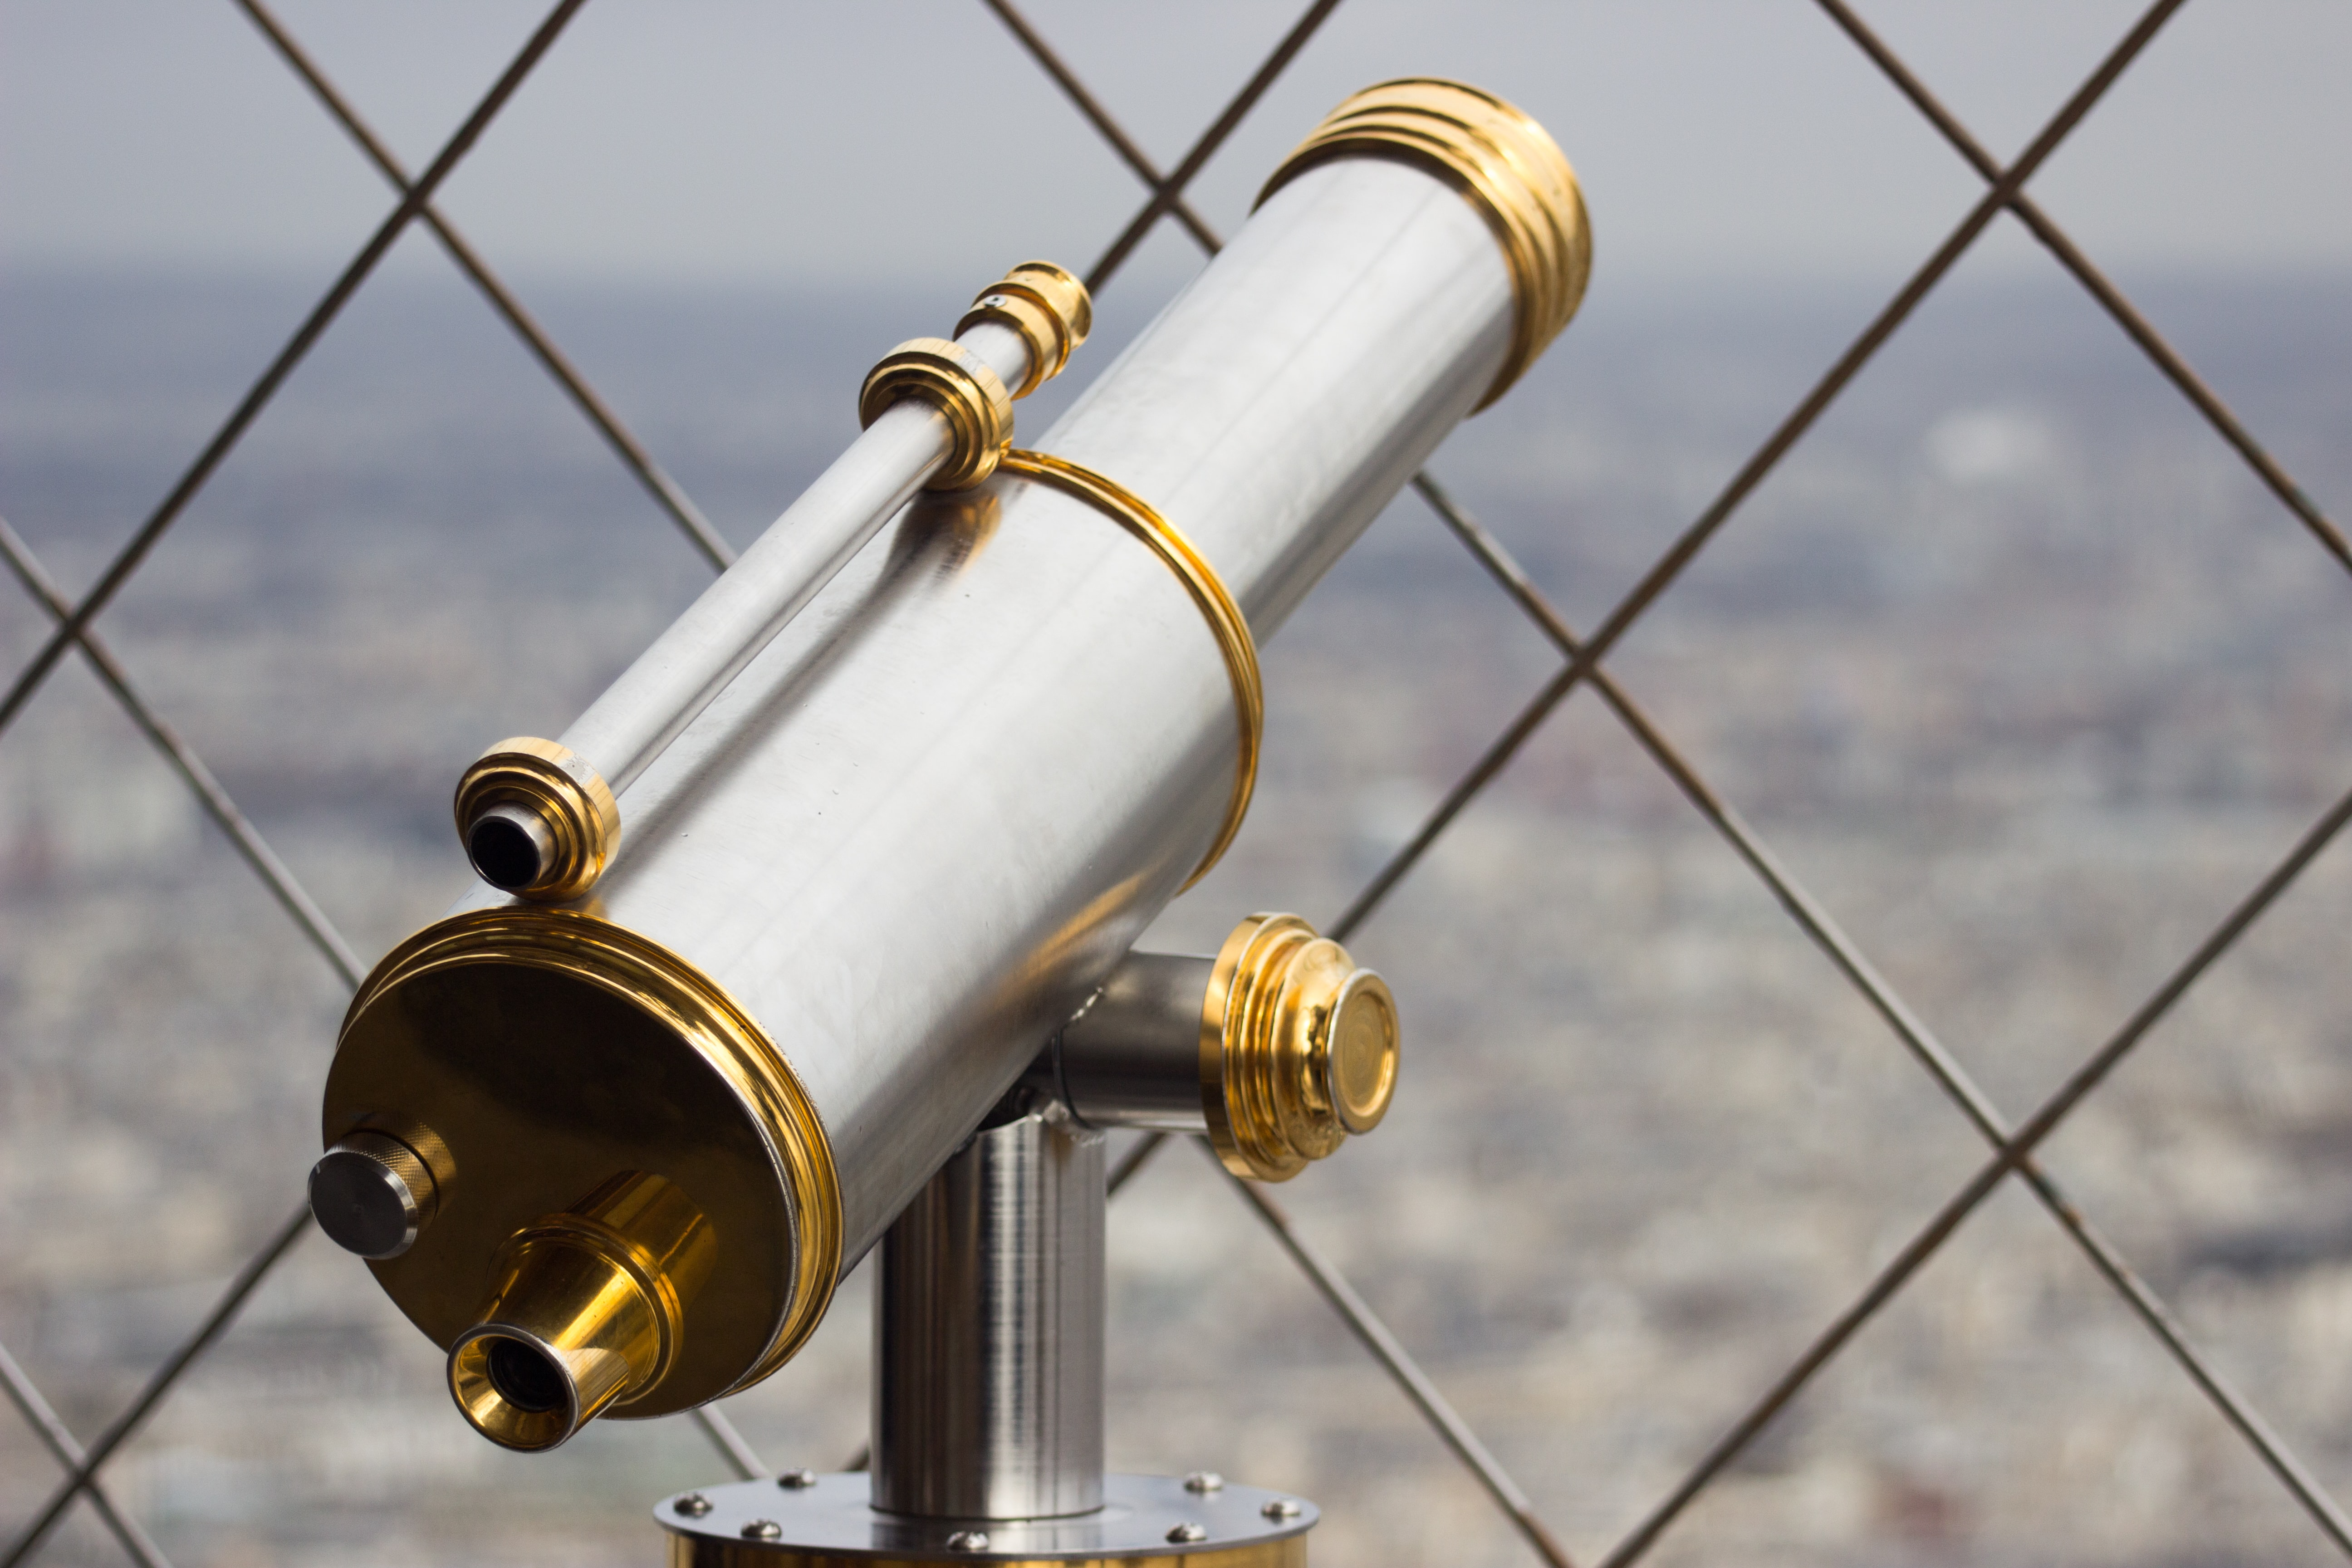 Sleek telescope peers through a chainlink fence over the city